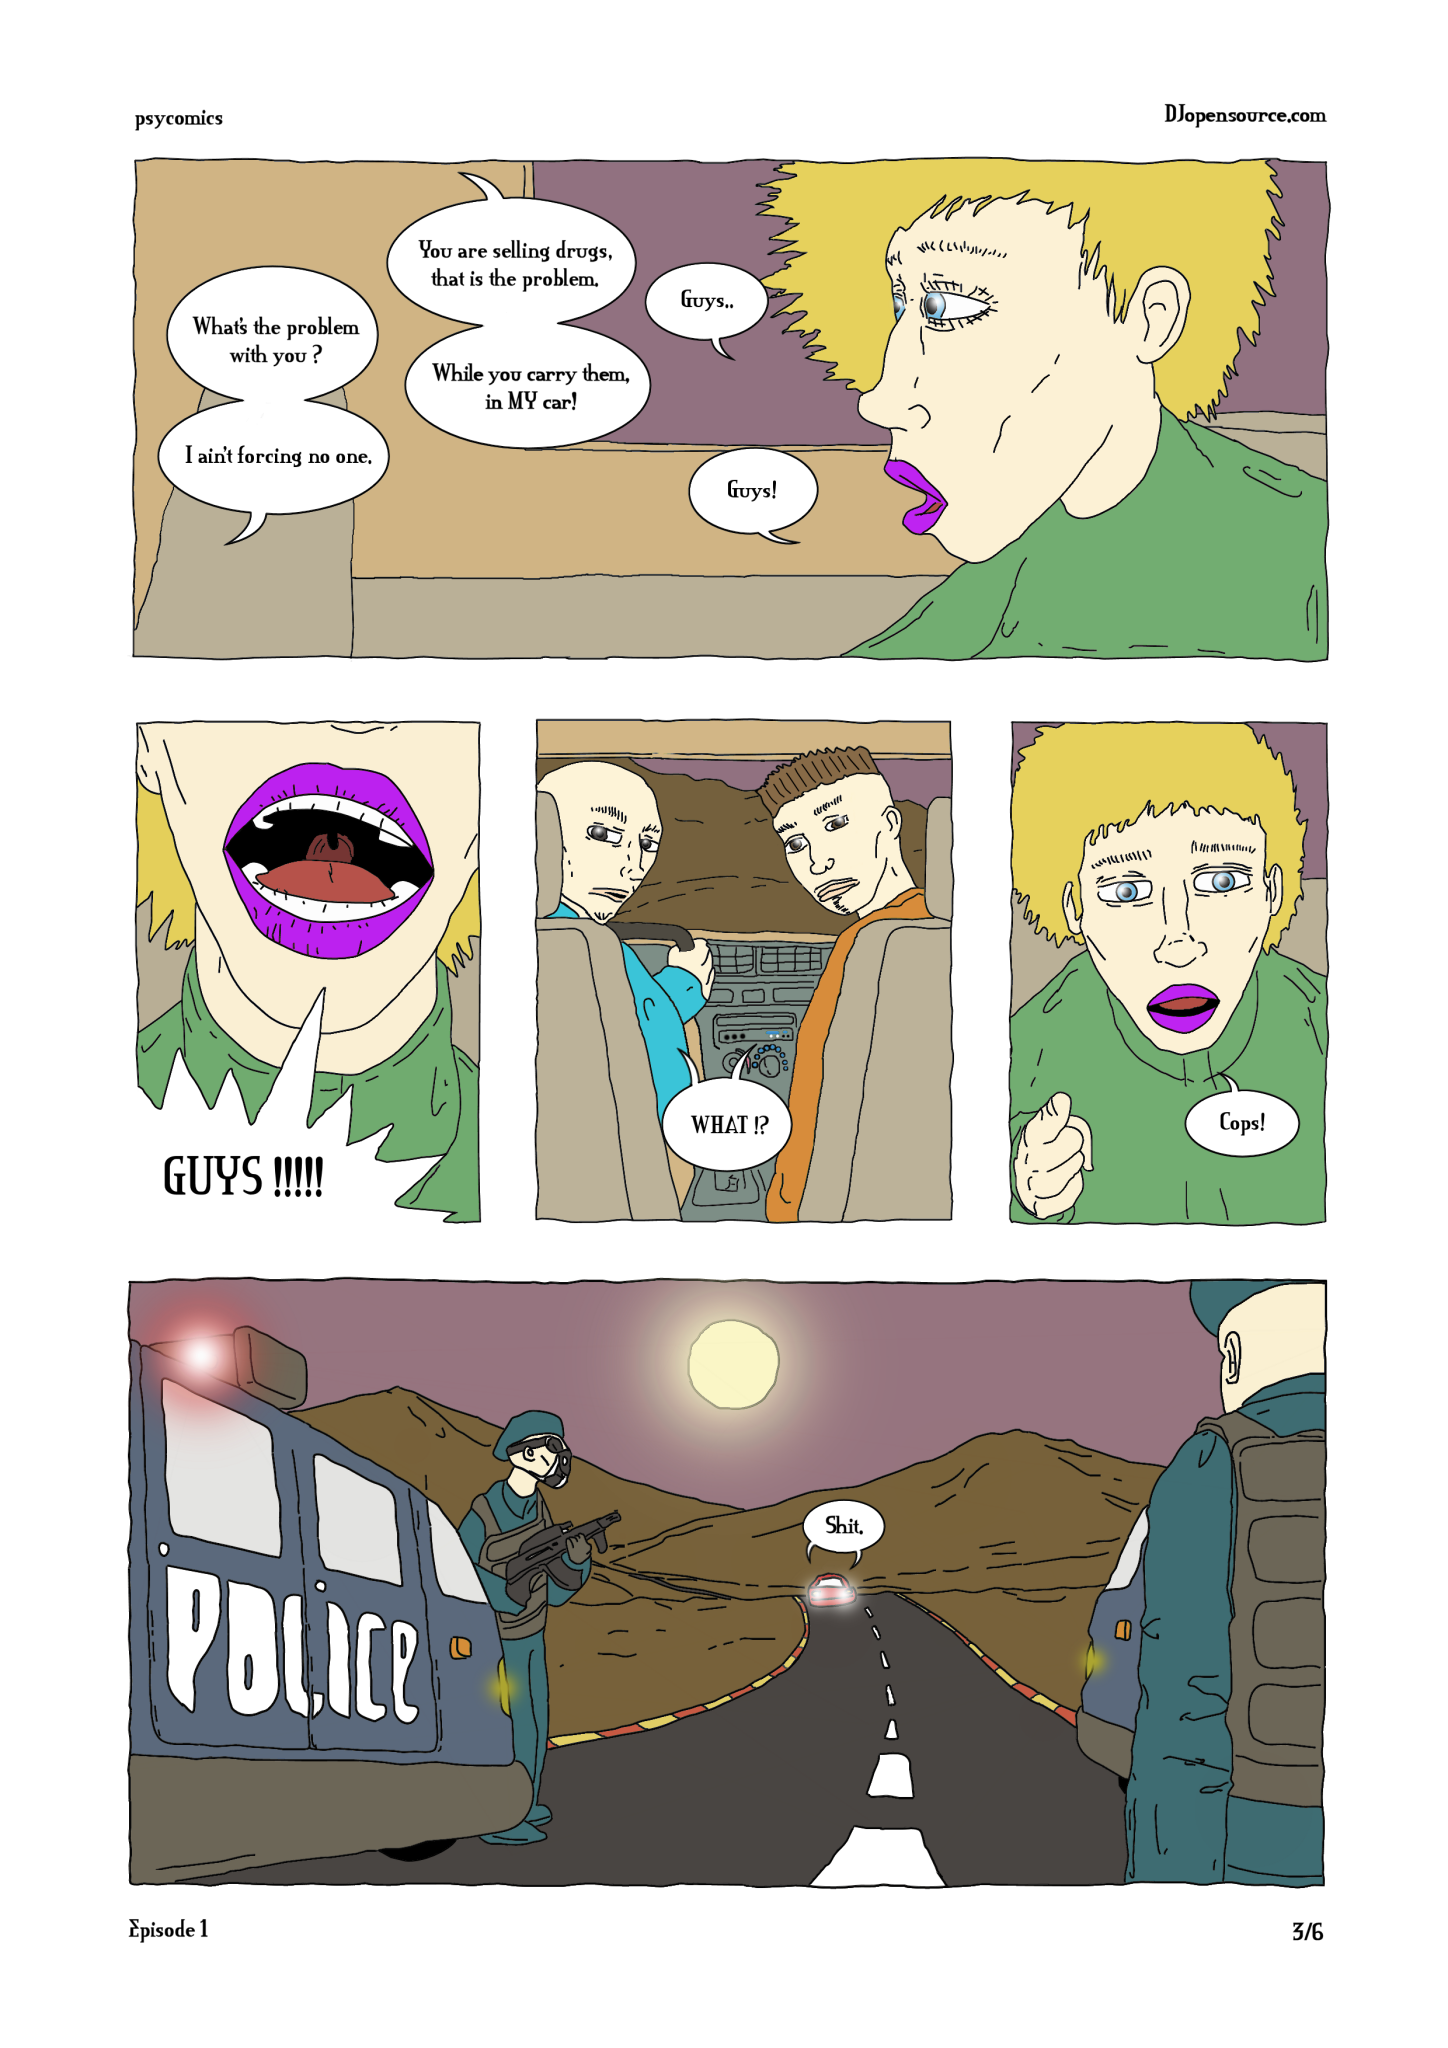 http://www.djopensource.com/images/psycomics_episode_1_page_3.png